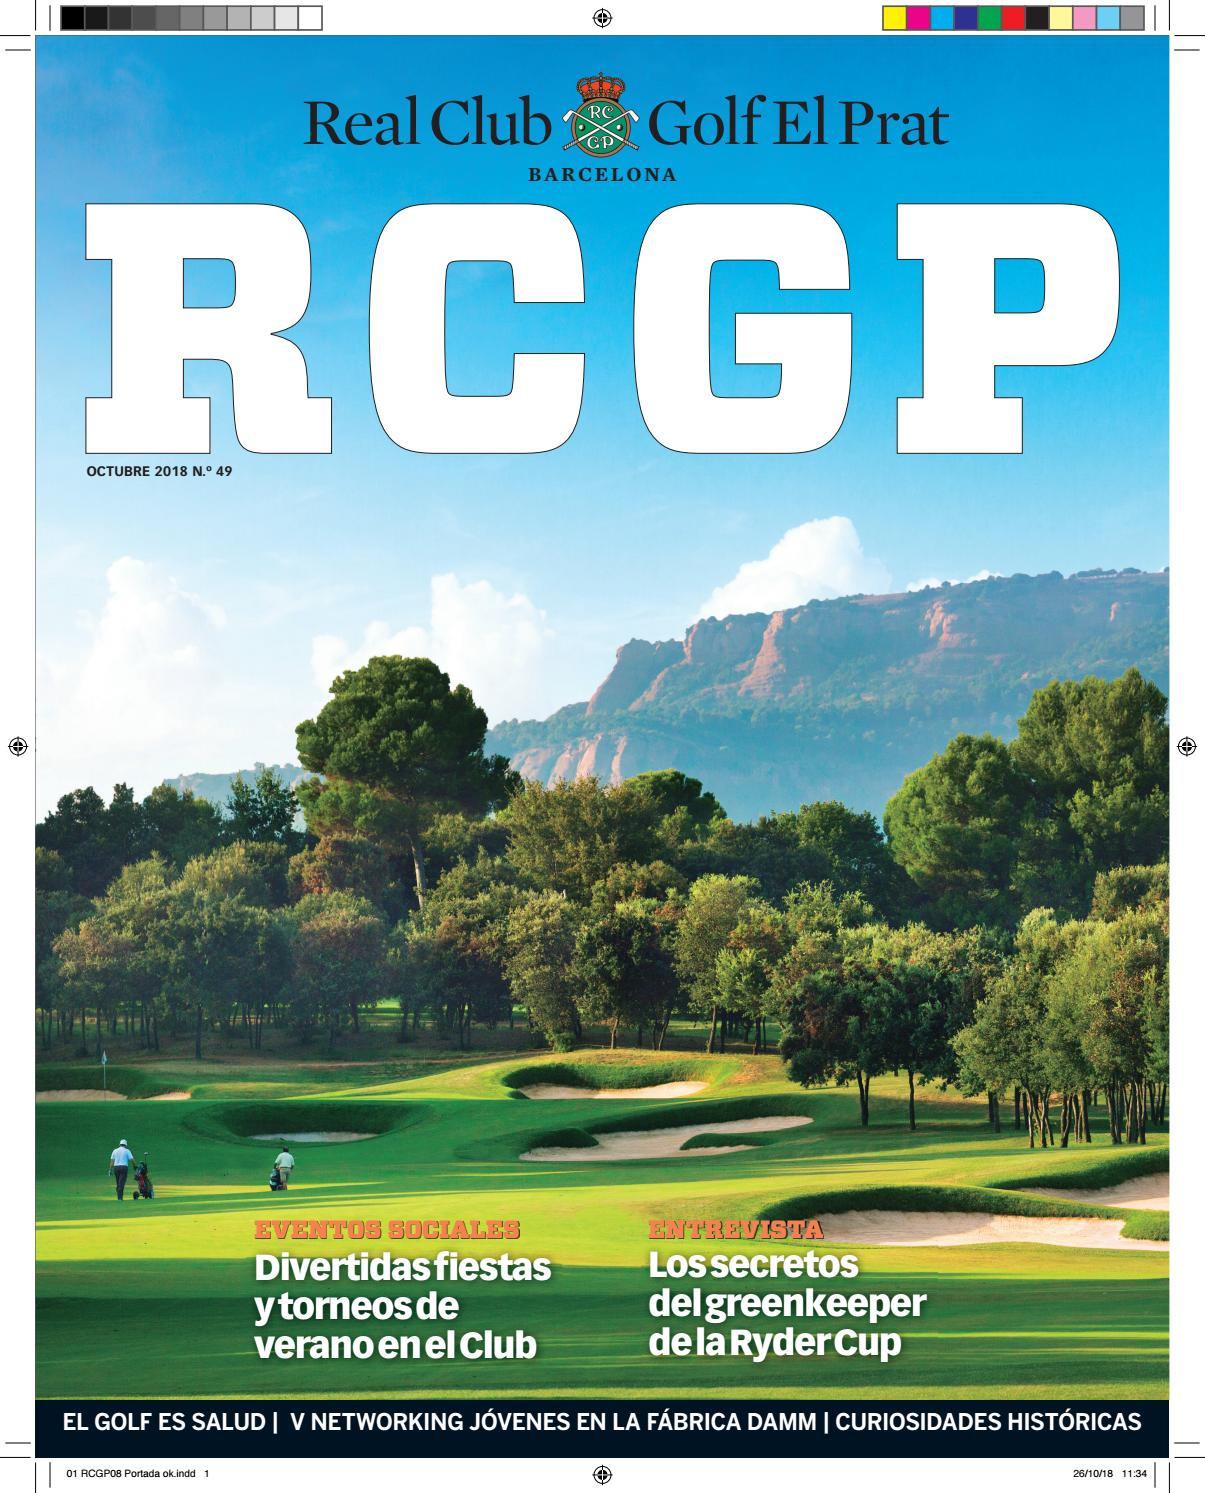 822431f89008d revista octubre 2018 by Real Club de Golf El Prat - issuu